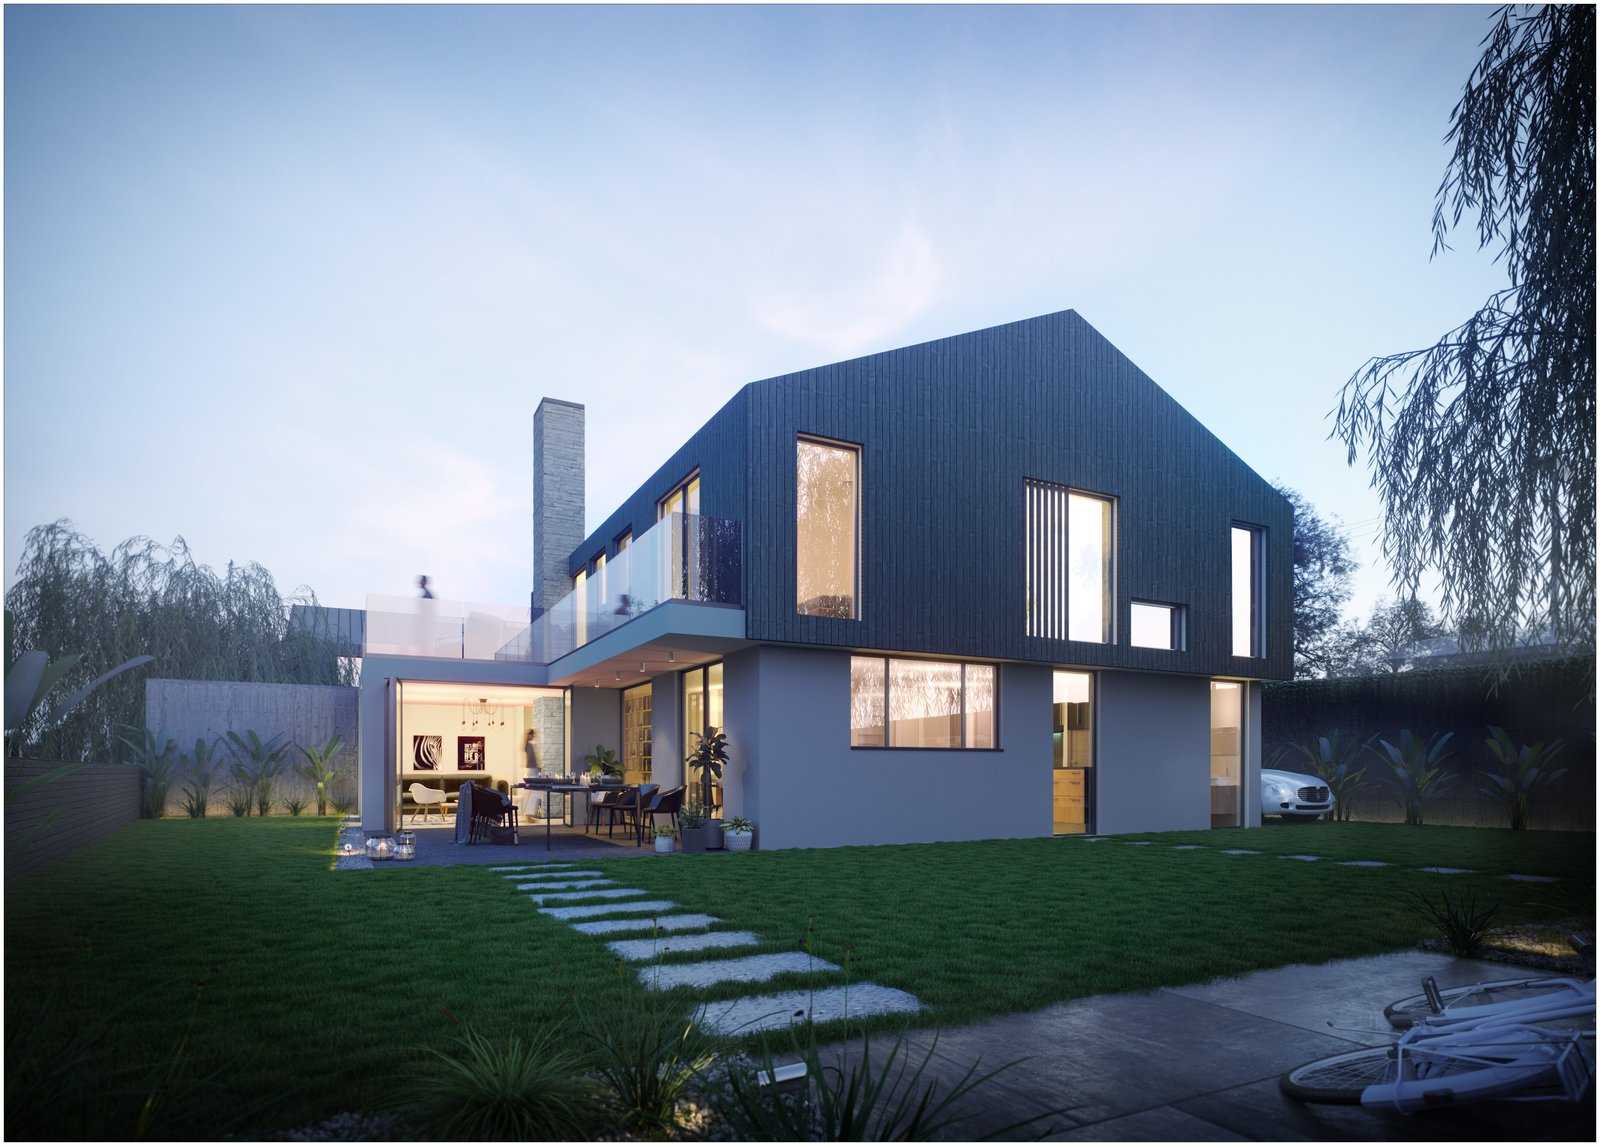 THE STATION HOUSES by Glen Thomas Architecture Ltd